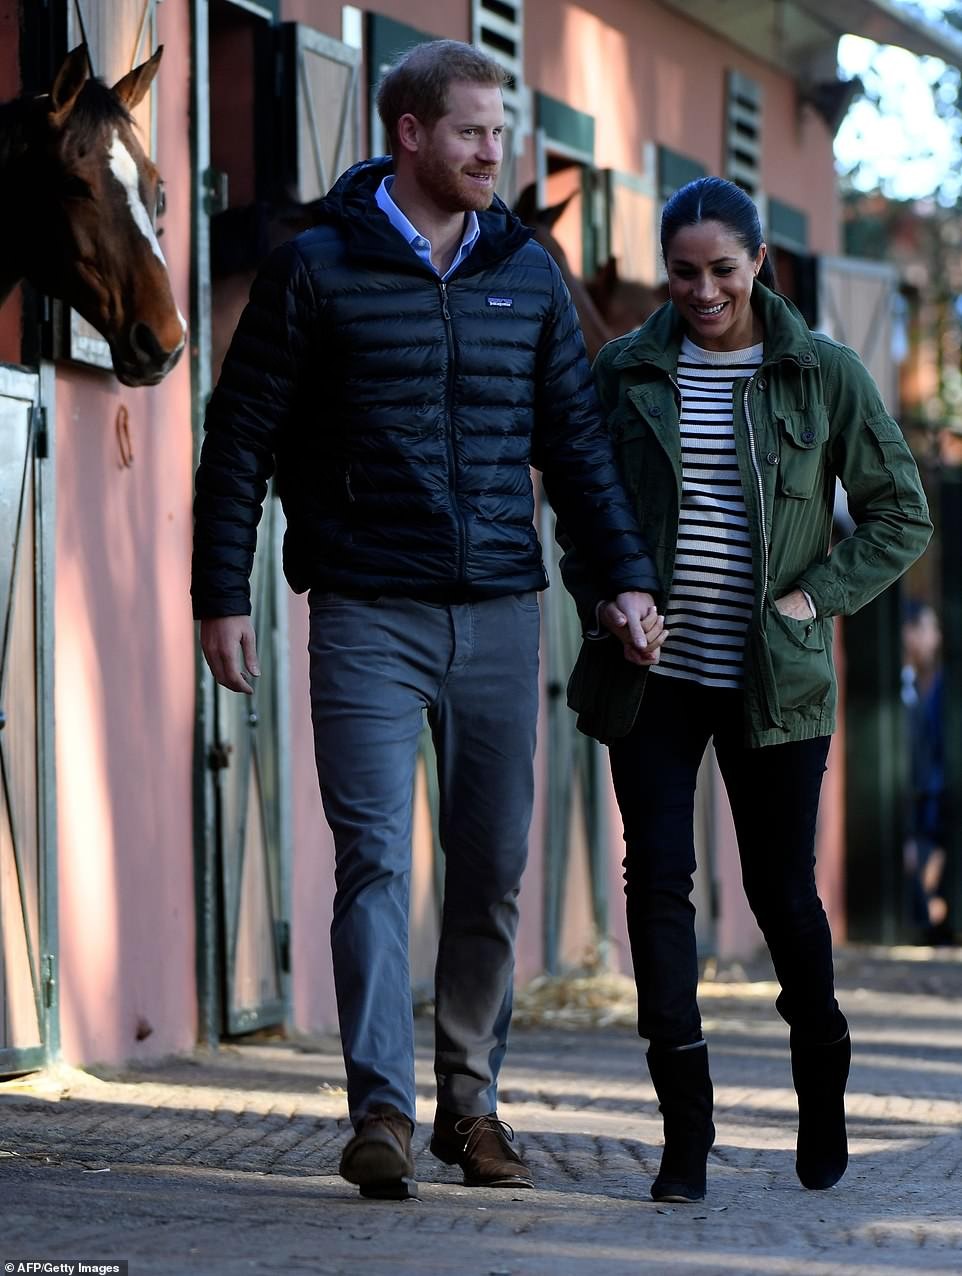 Meghan chose to recycle a J Crew jacket that she had been seen wearing in her early days of dating Prince Harry